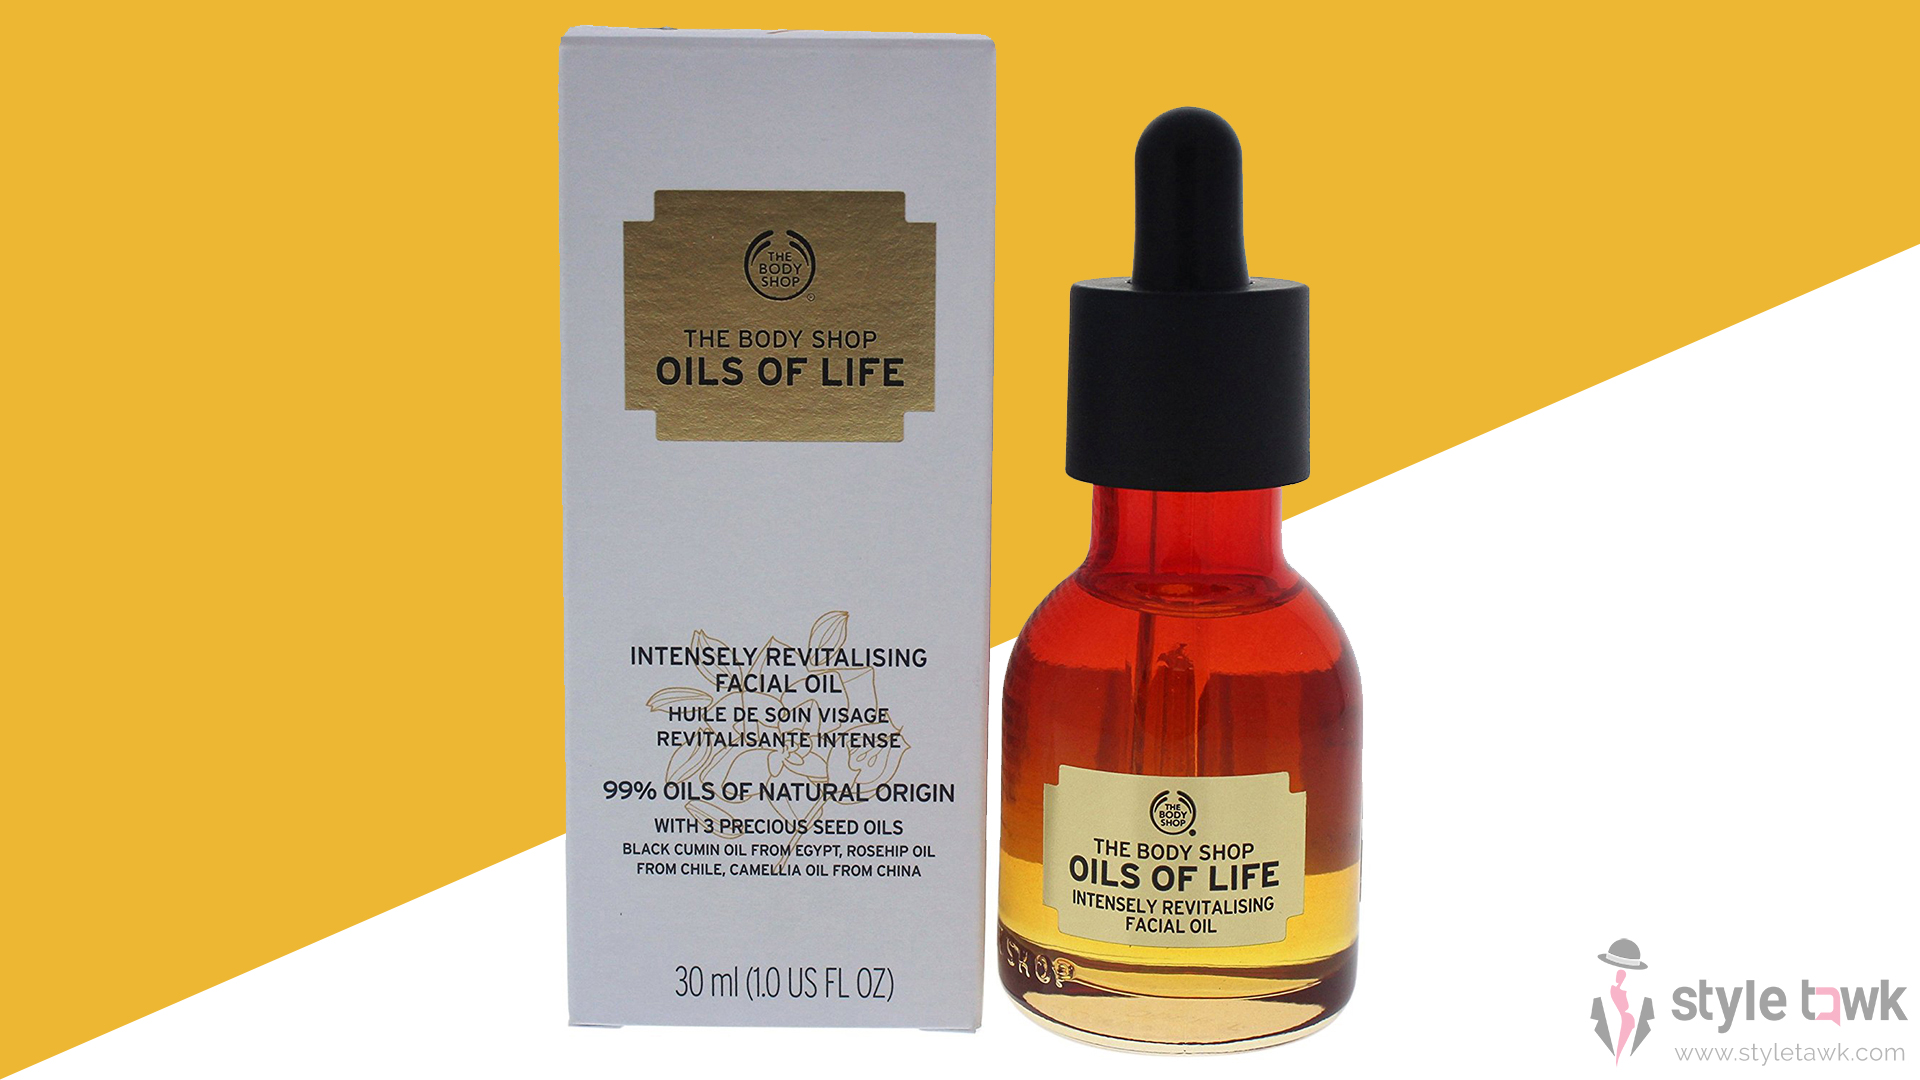 The Body Shop Oils Of Life™ Intensely Revitalizing Facial Oil – Review